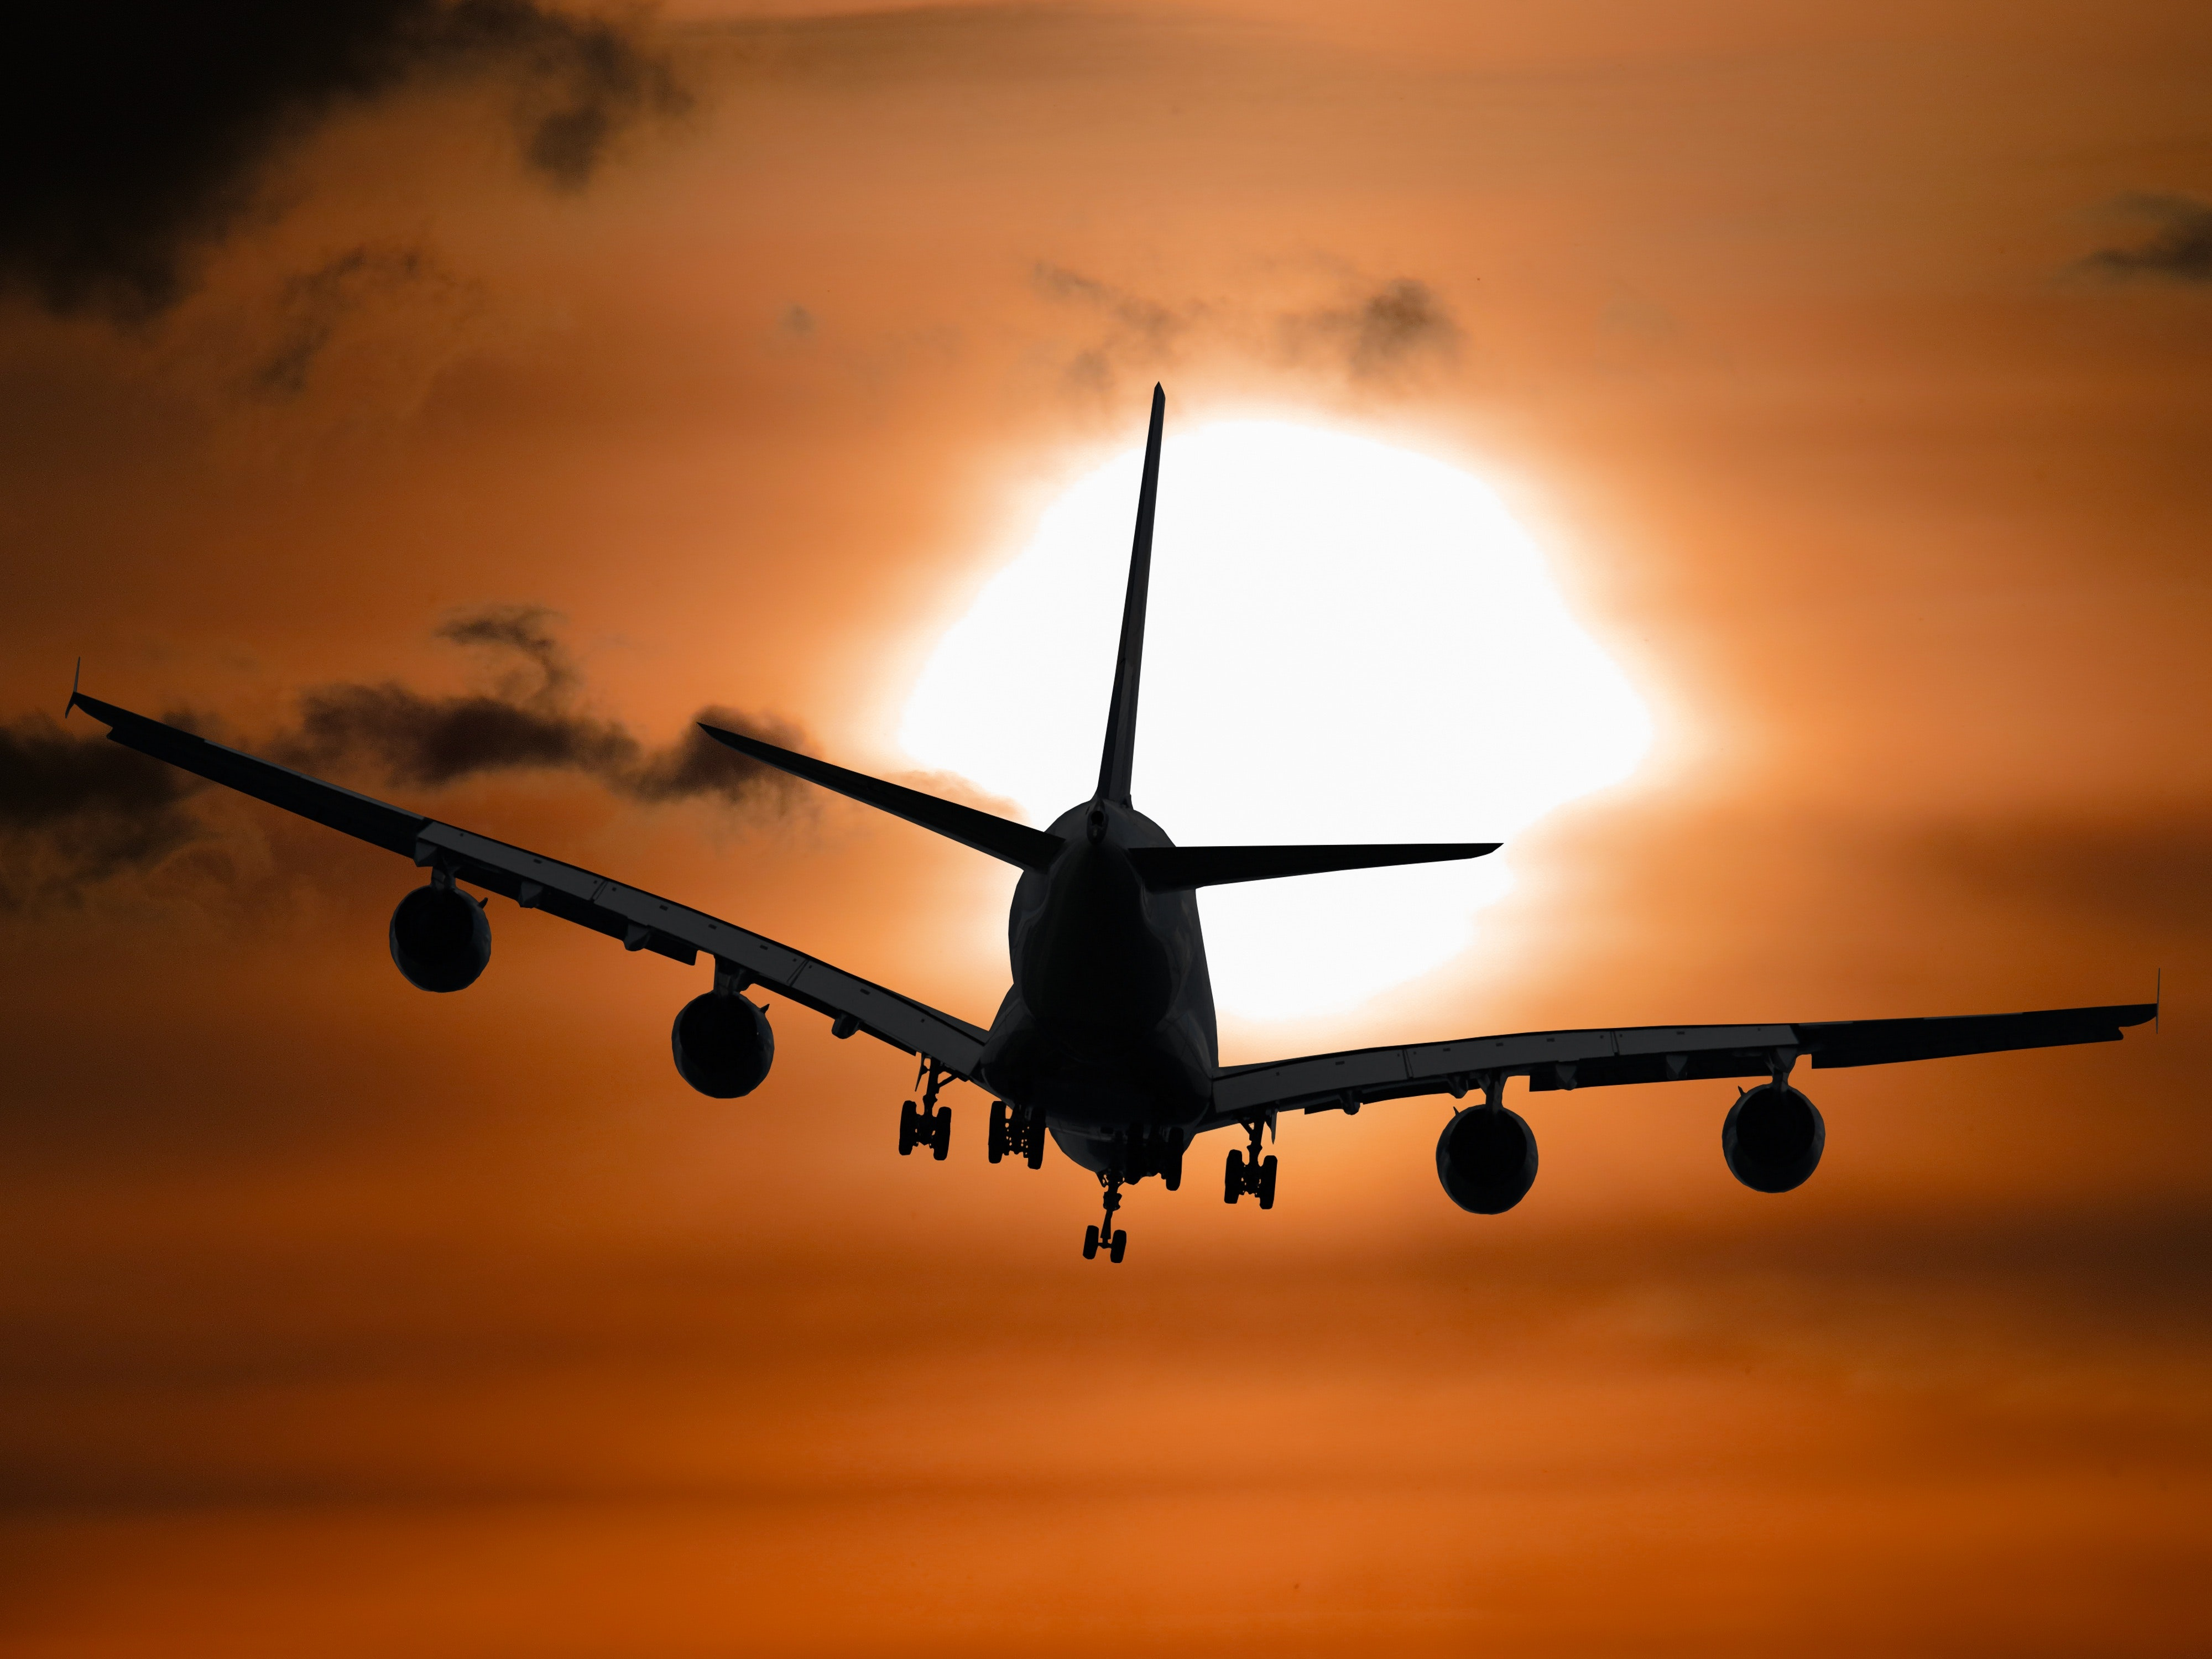 Shadow Image of a Plane Flying during Sunset, Aeroplane, Aircraft, Airplane, Aviation, HQ Photo